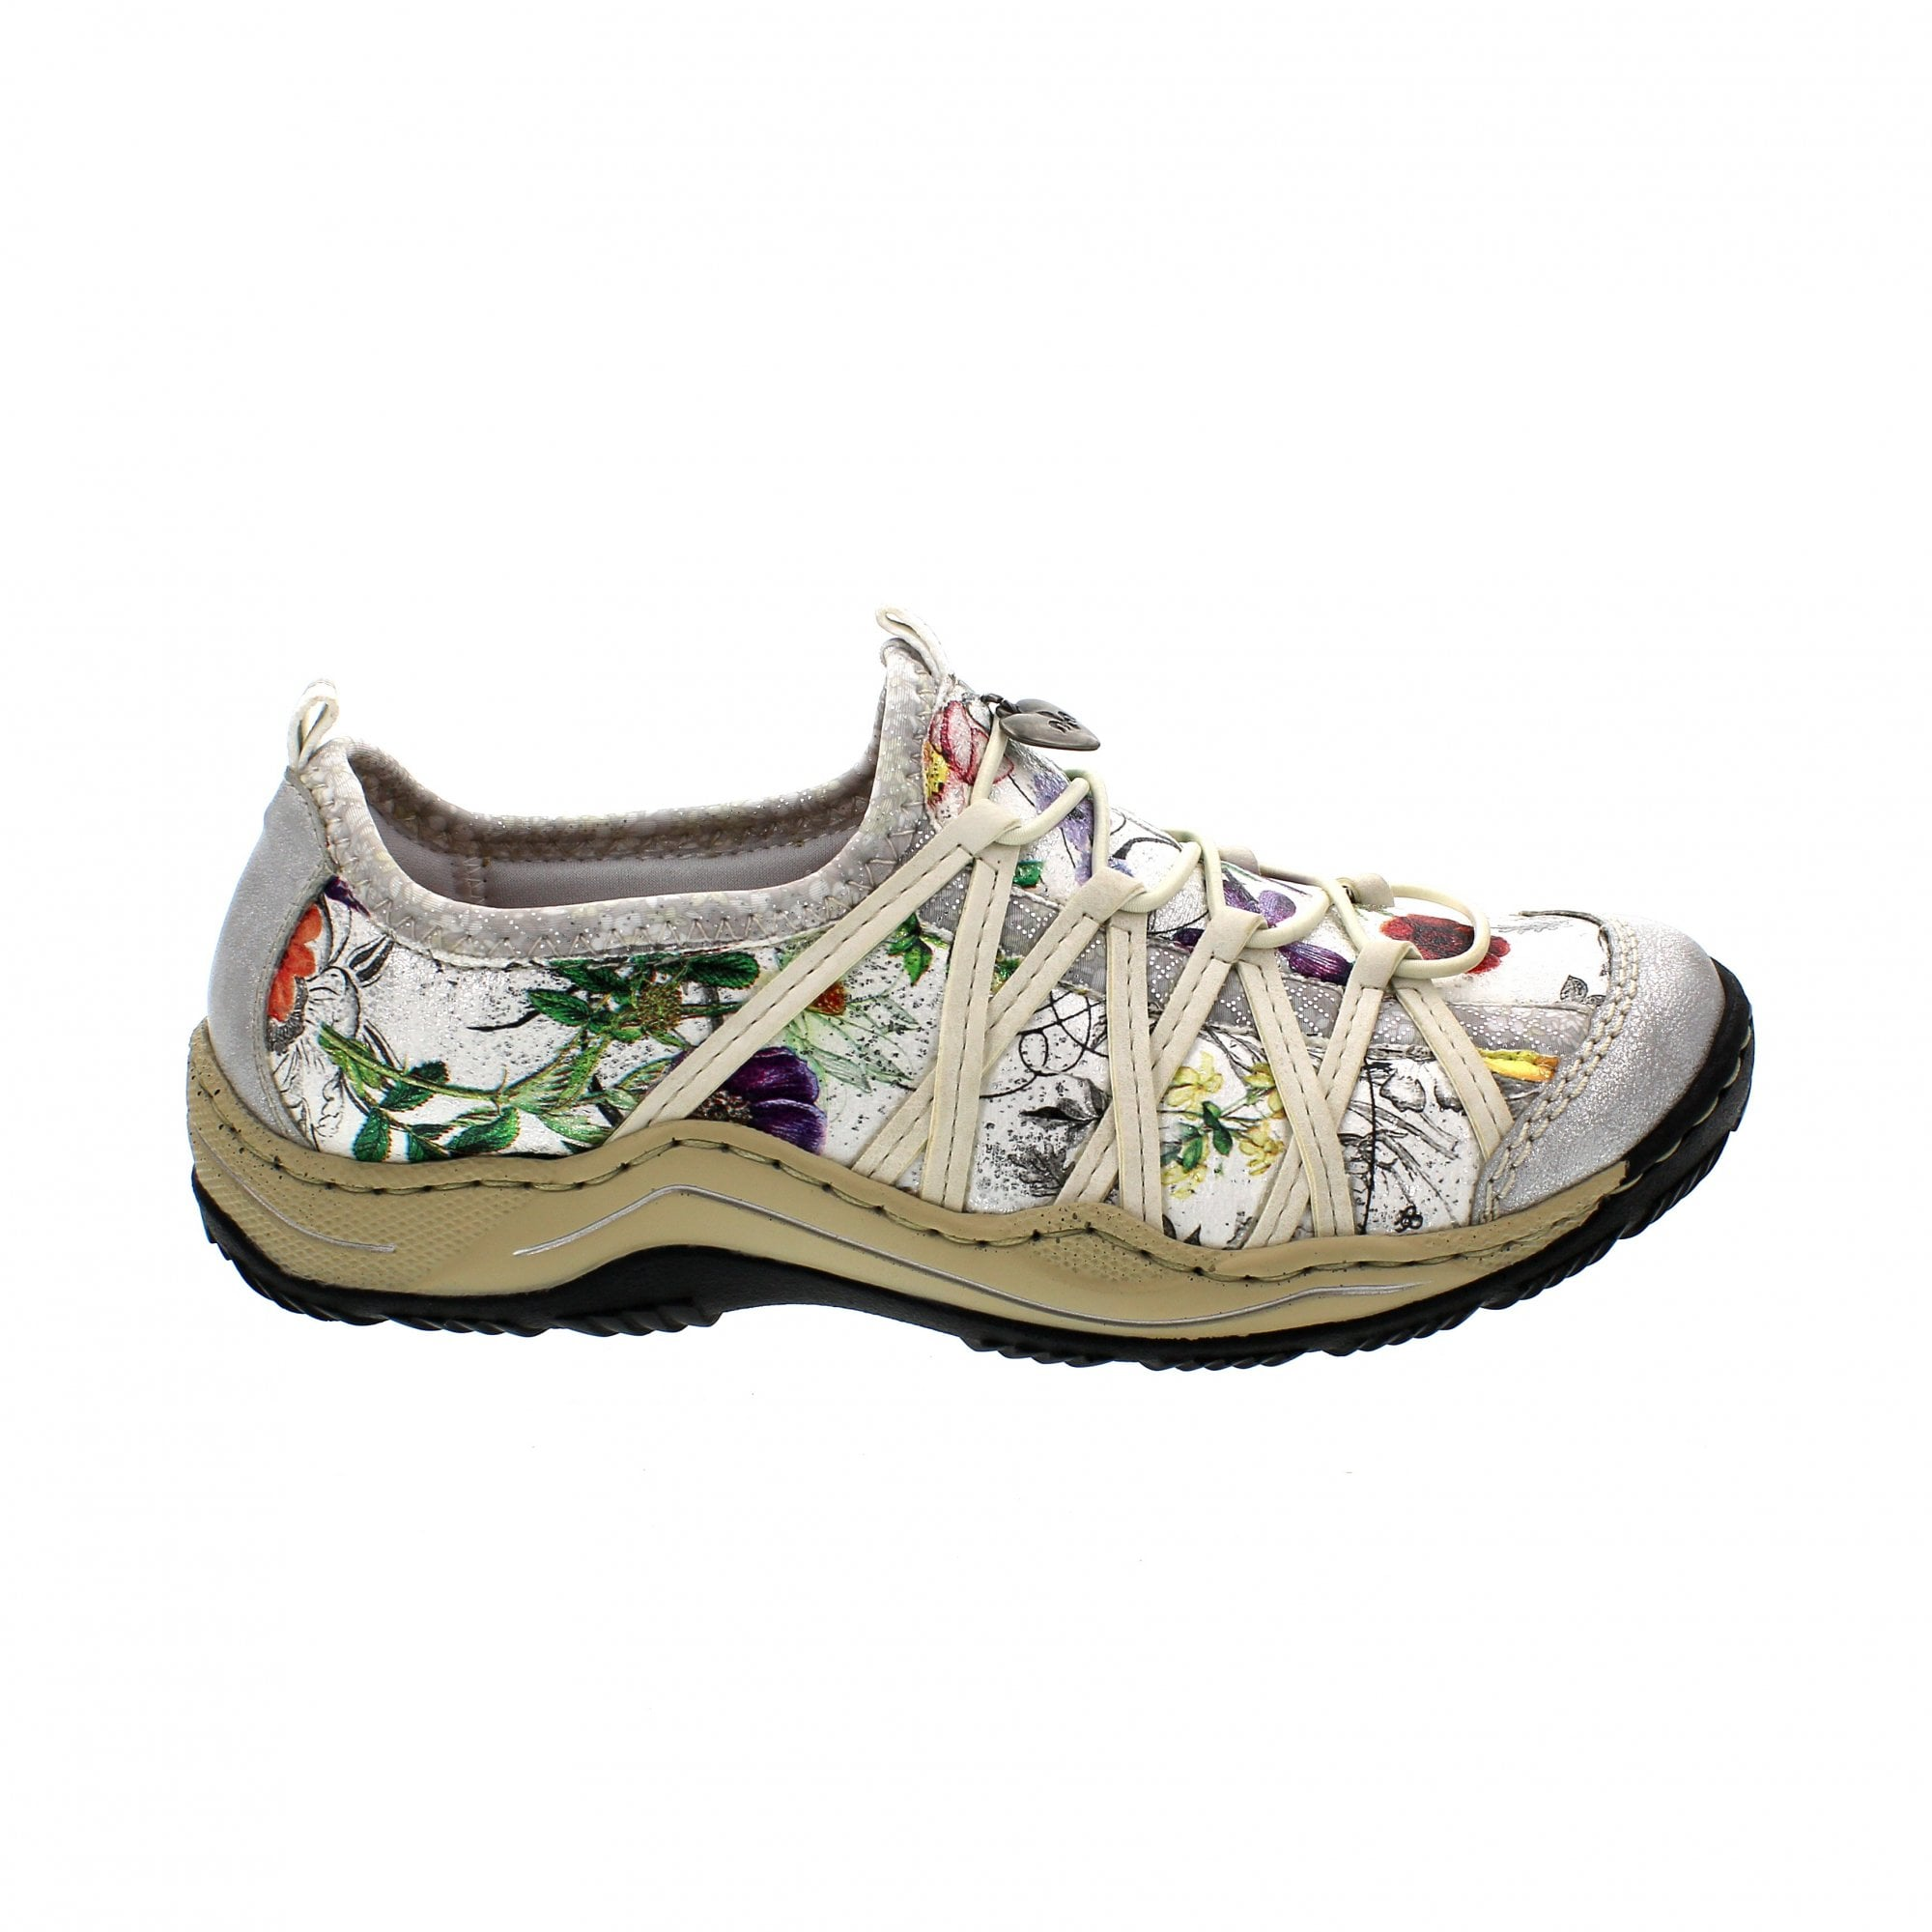 1bf5171d0 Rieker L0559-81 Off White/Silver Womens Slip On Trainers | Rogerson ...